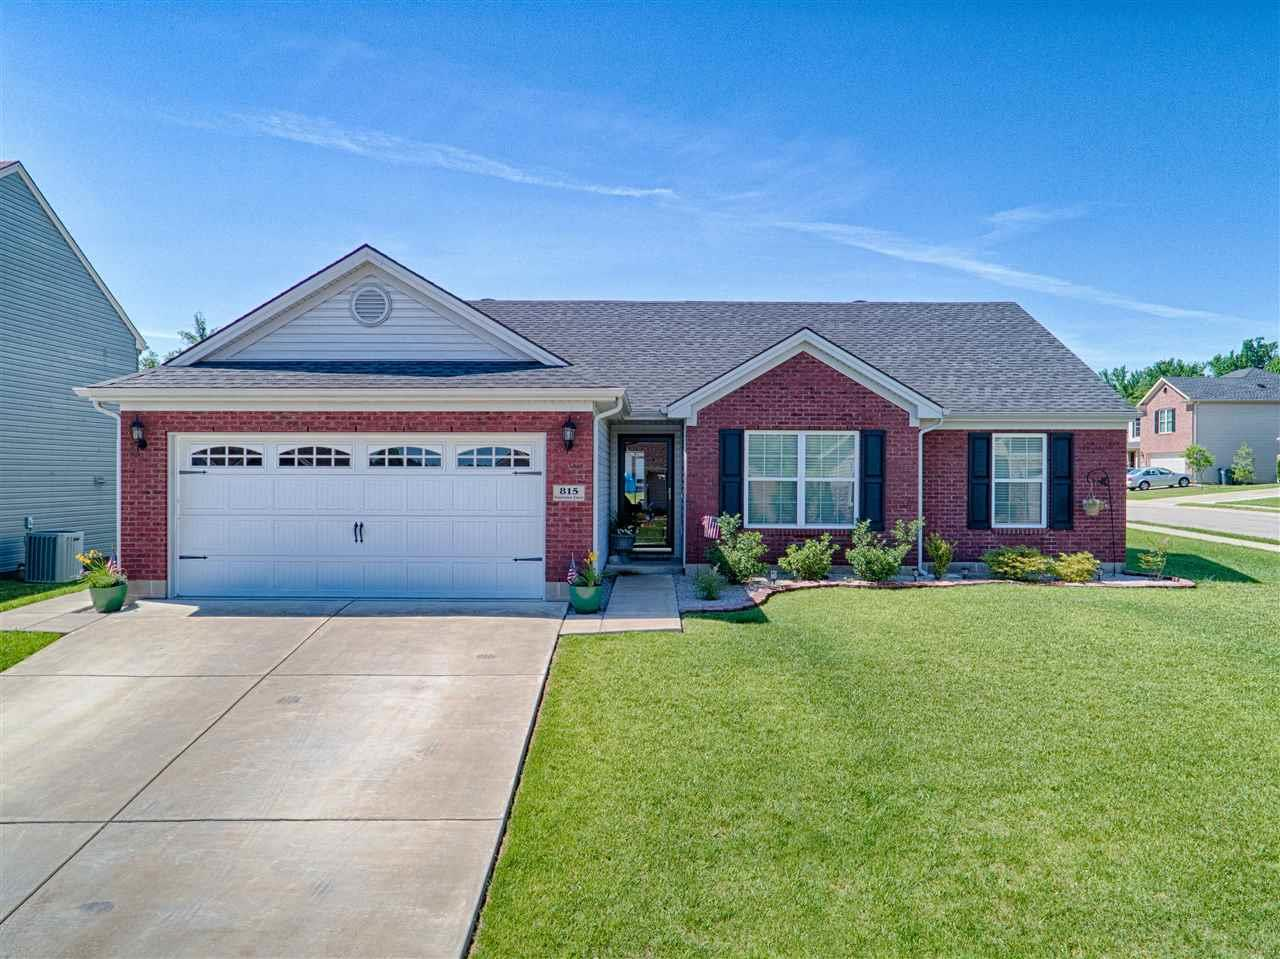 815 Groveview, Evansville, IN 47711